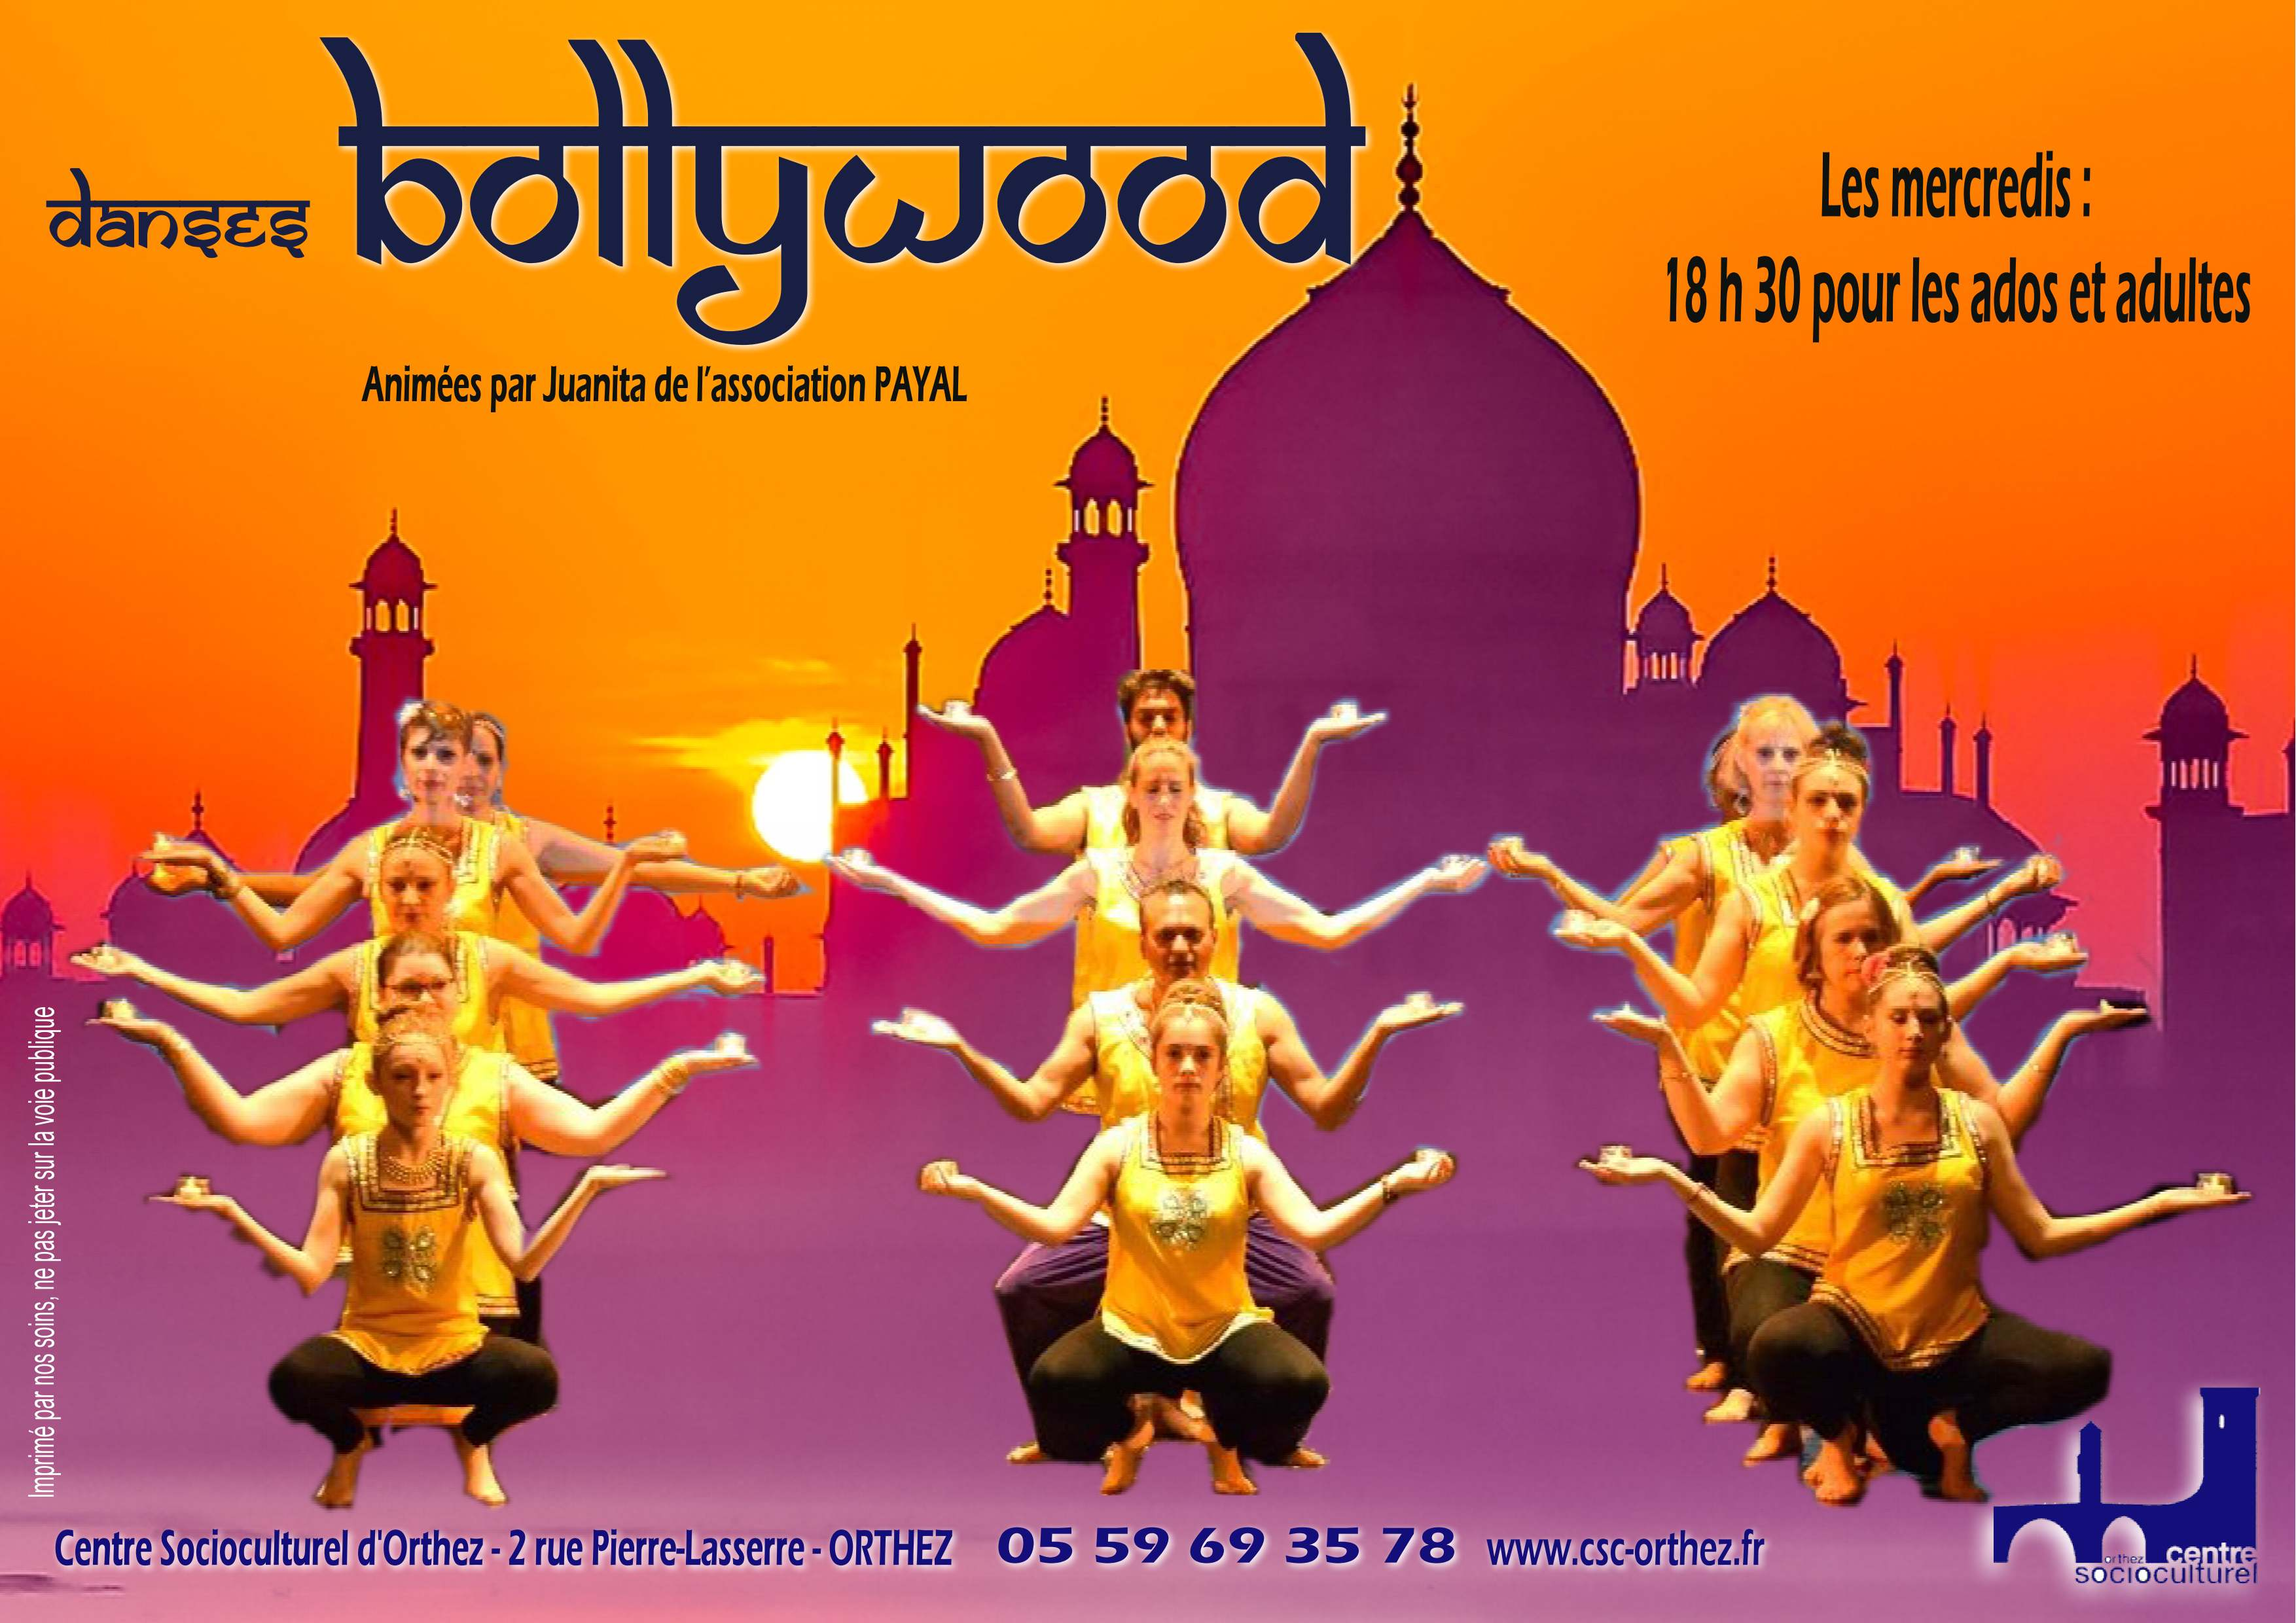 84Danses Bollywood 2018-2019